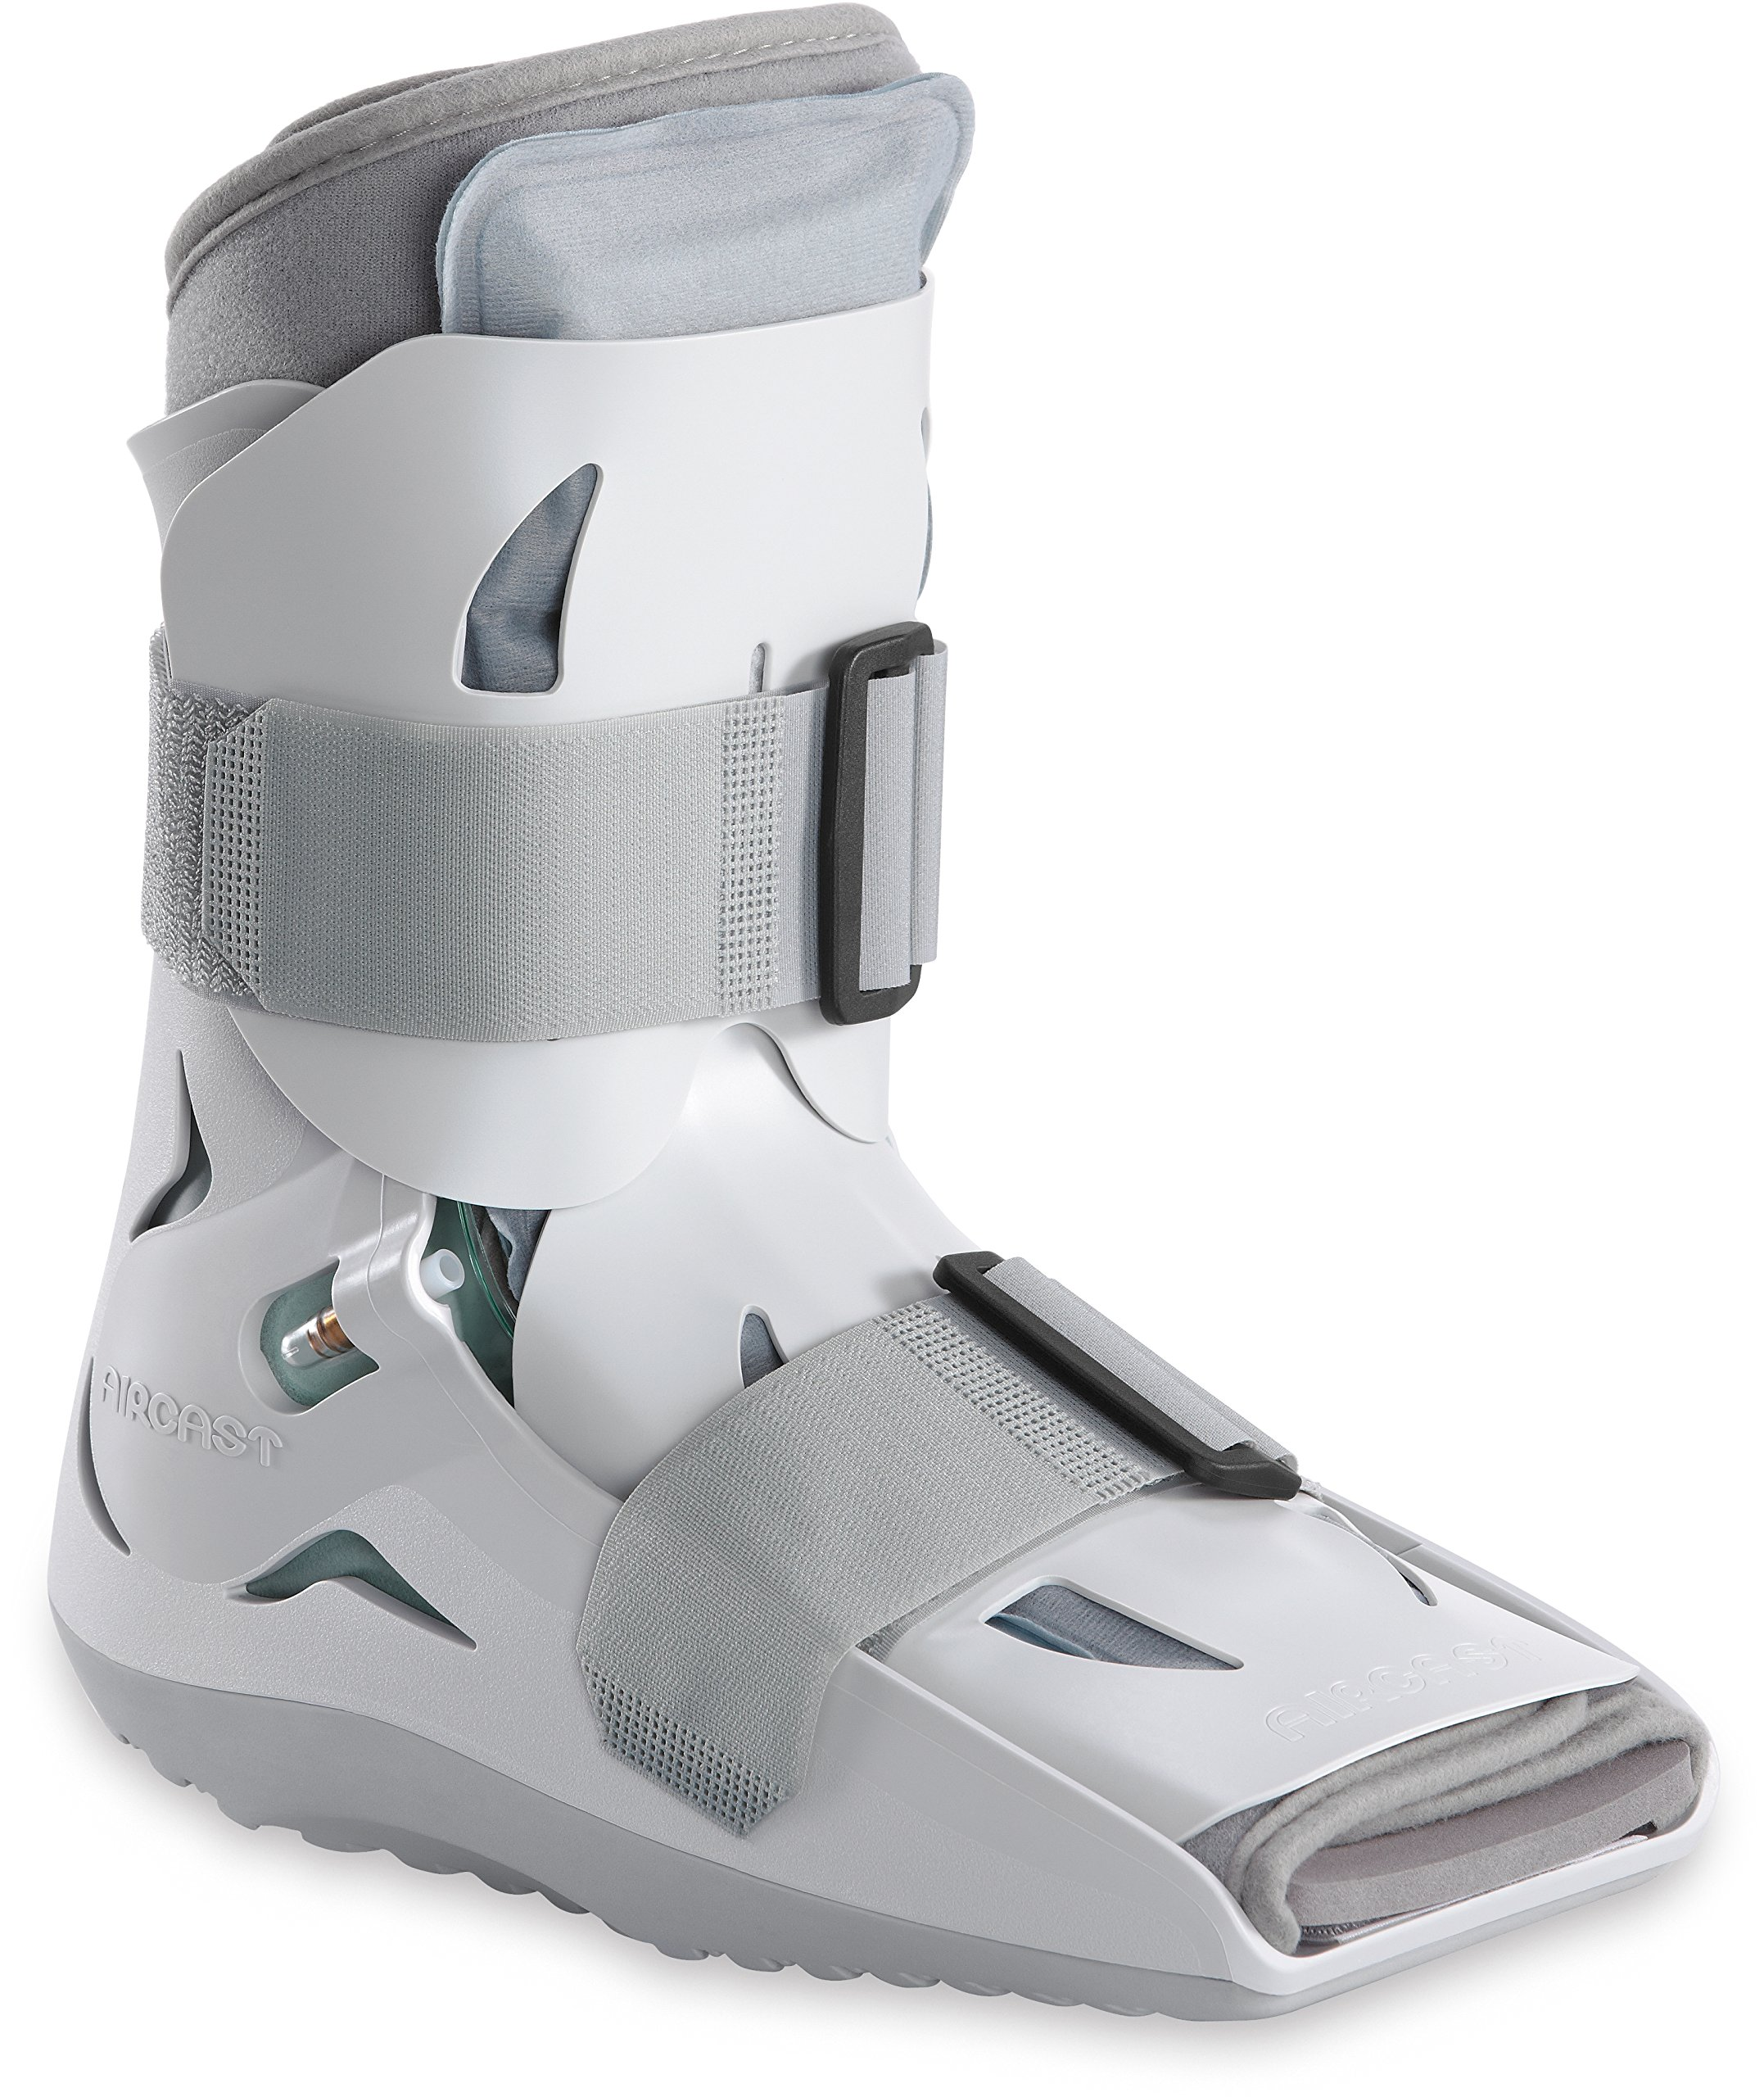 Aircast SP (Short Pneumatic) Walker Brace/Walking Boot, Small